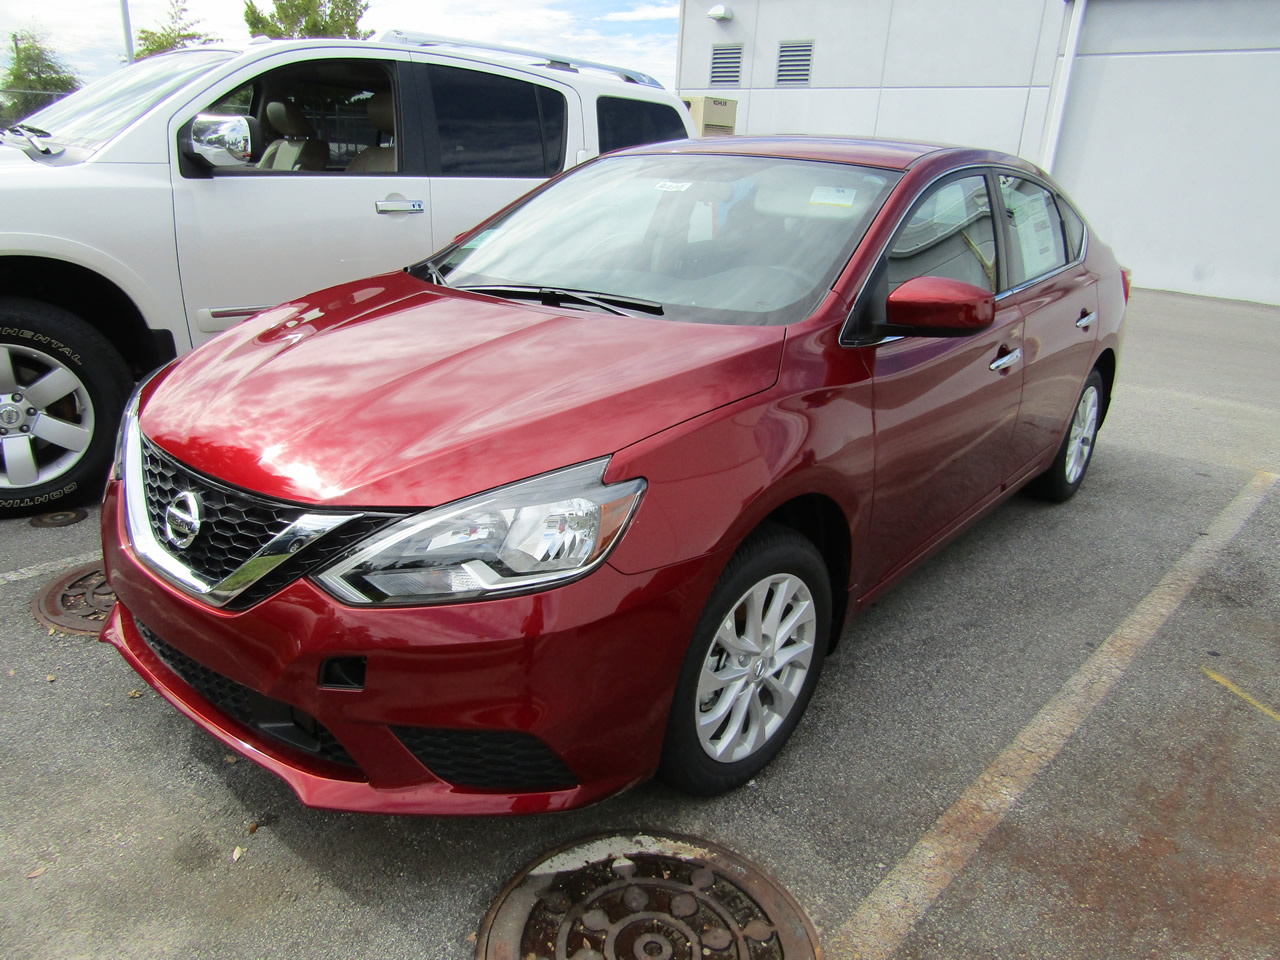 new 2019 nissan sentra sv vin 3n1ab7ap1ky201615 columbia sc 29223 dick smith nissan of columbia. Black Bedroom Furniture Sets. Home Design Ideas